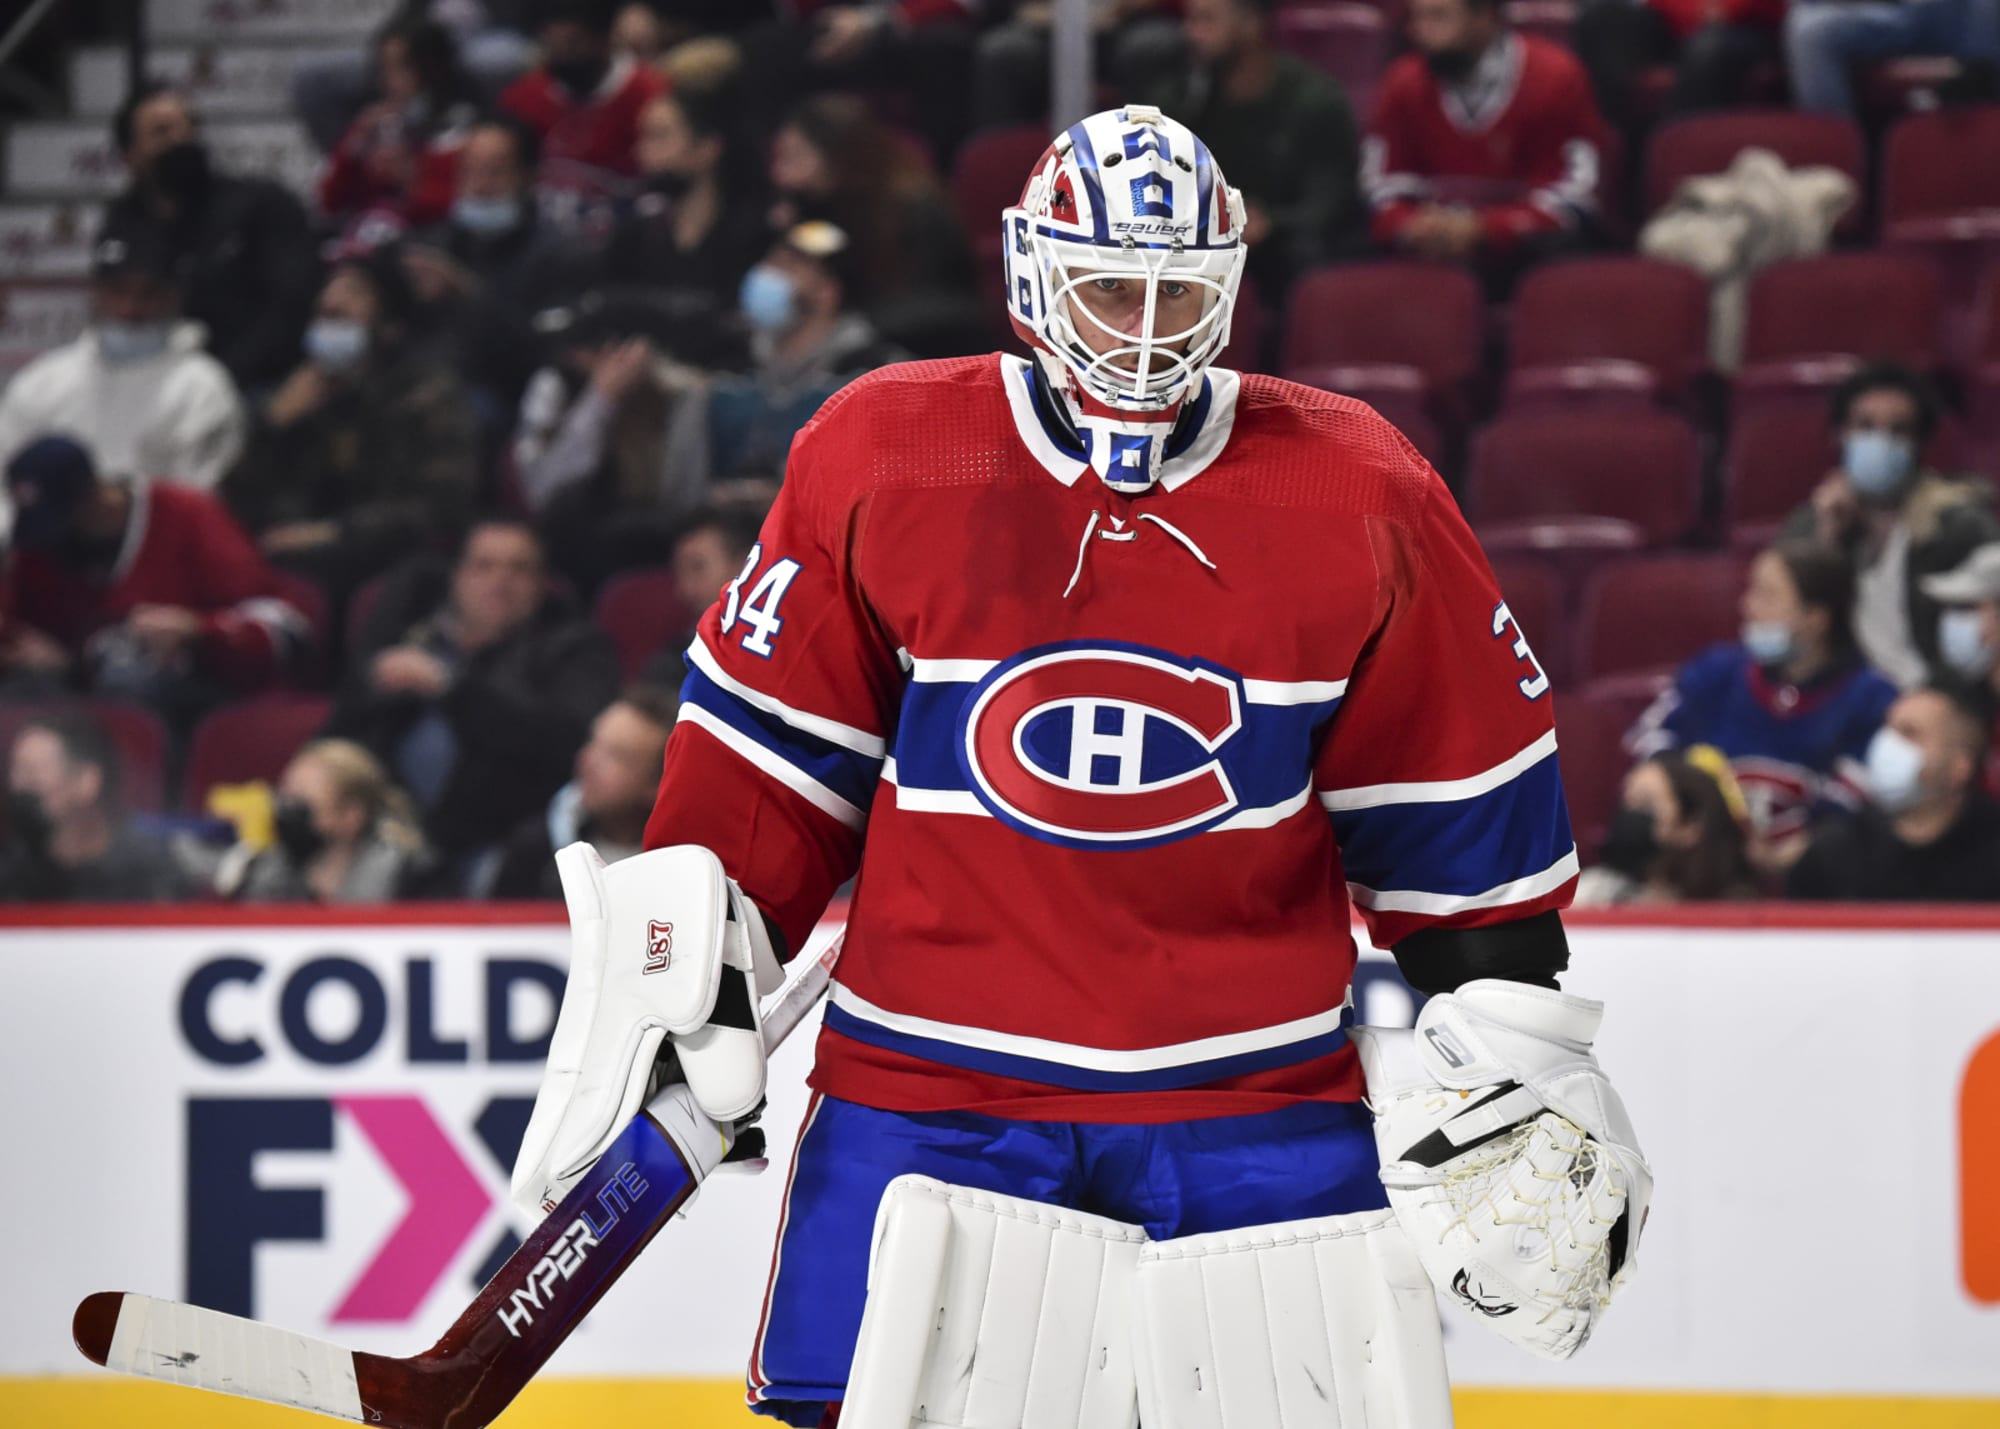 Canadiens: Are The Playoffs Suddenly Out Of Reach?